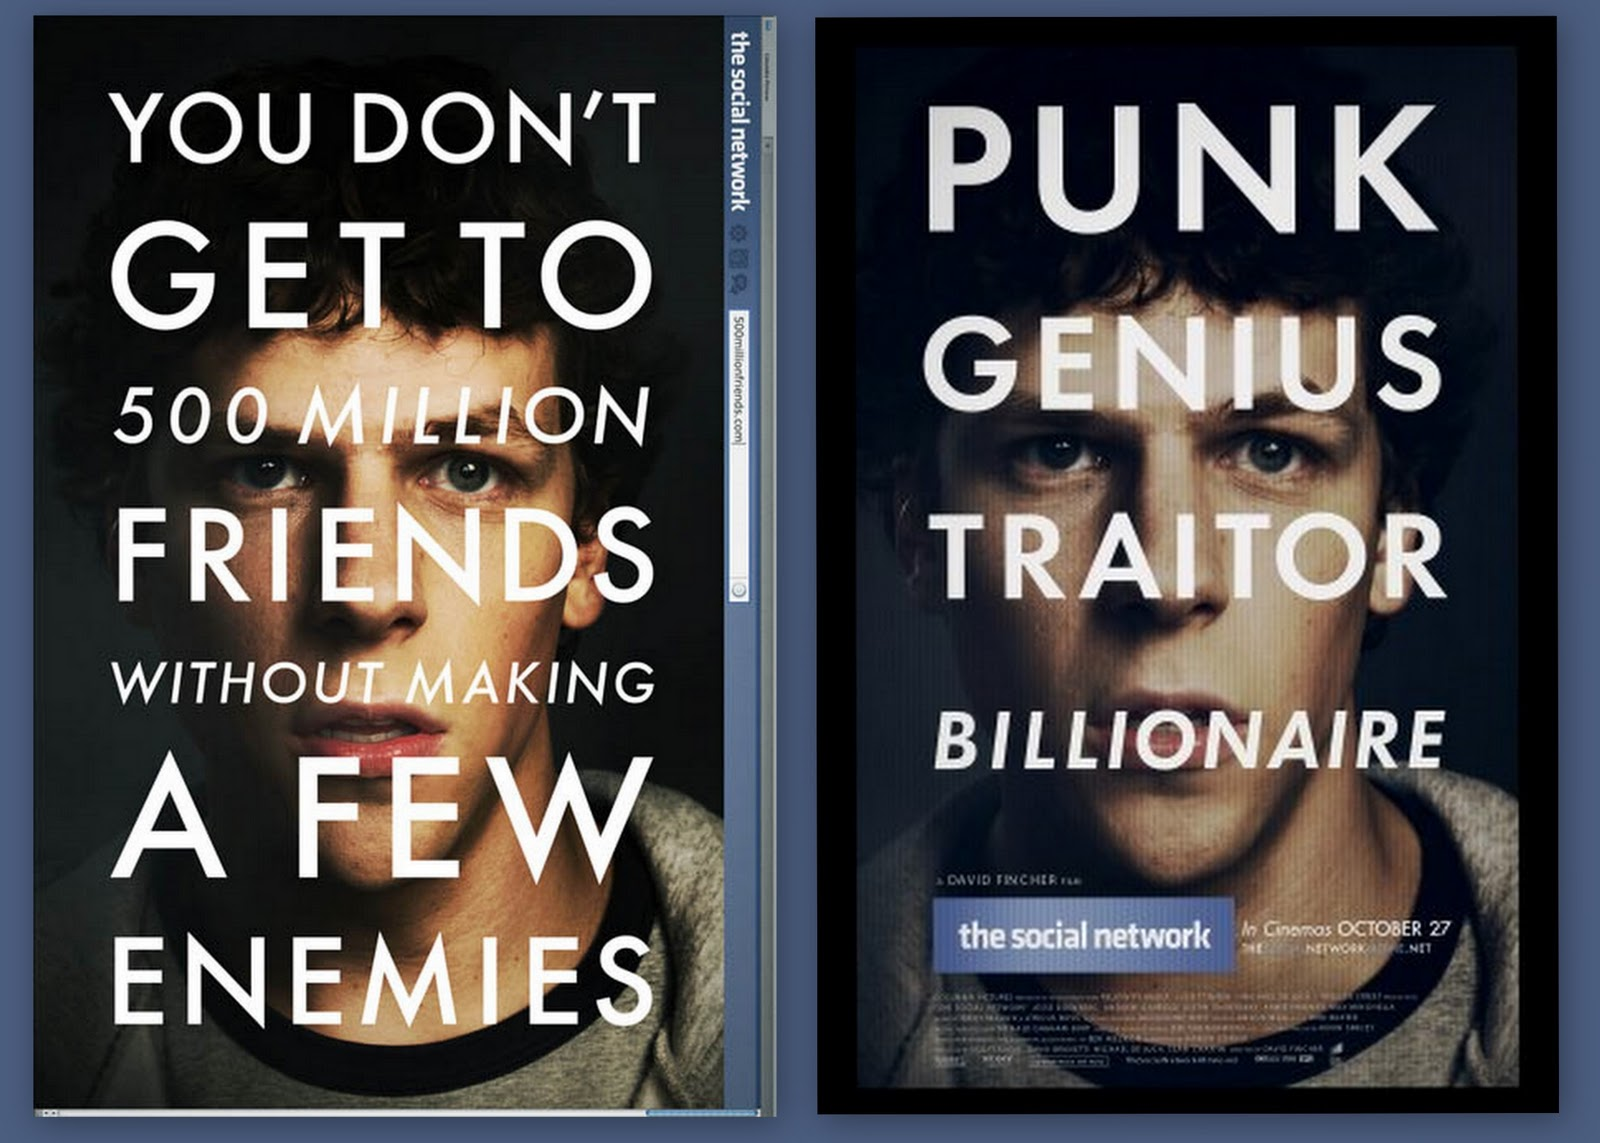 the social network film